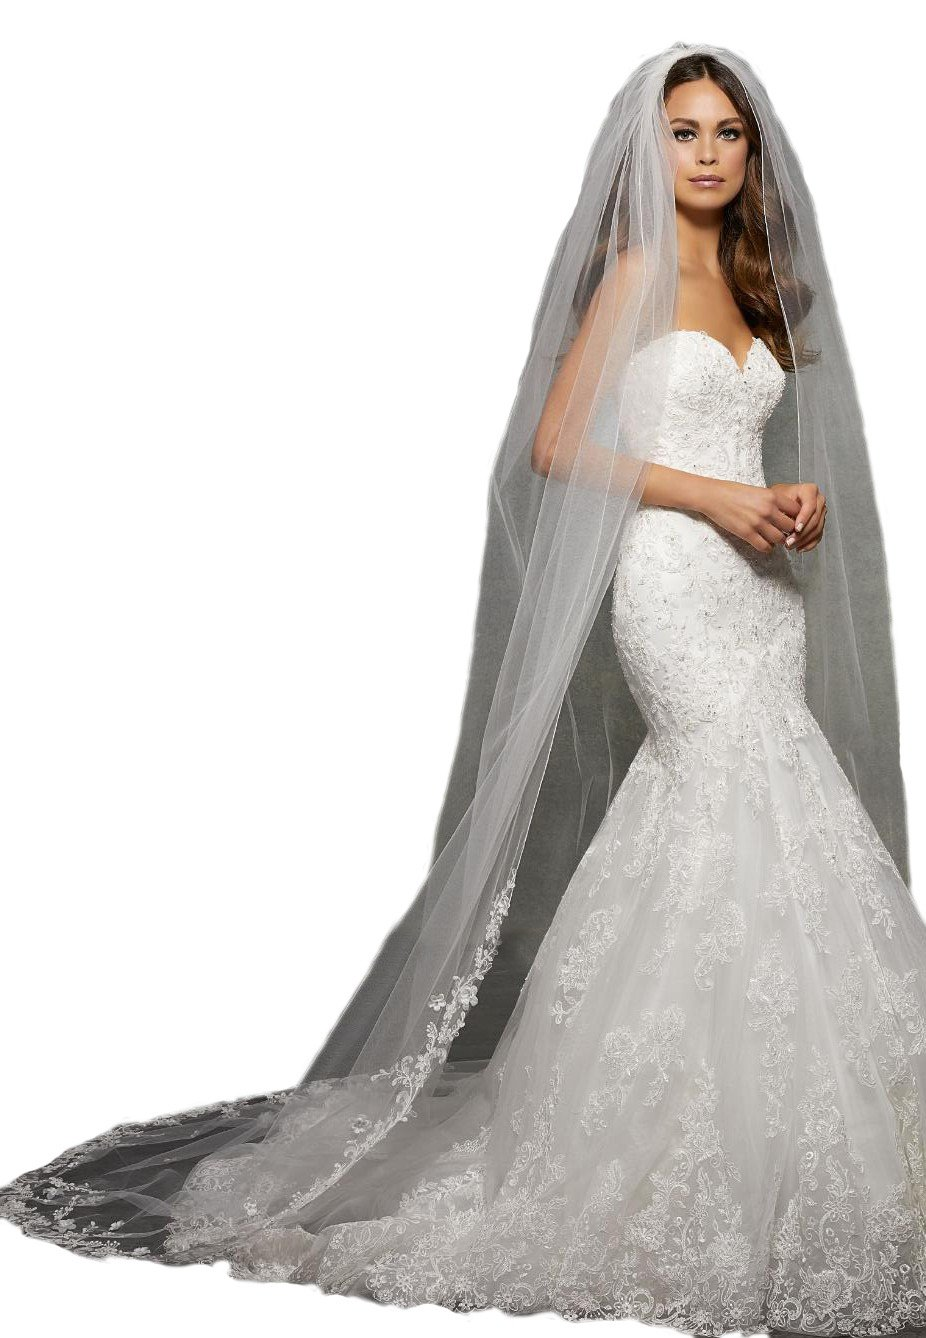 Passat Pale Ivory Single-Tier 3M Cathedral Wedding Bridal Veil with Lace and Floral Design Lightly Beaded with Rhinestones VL1054